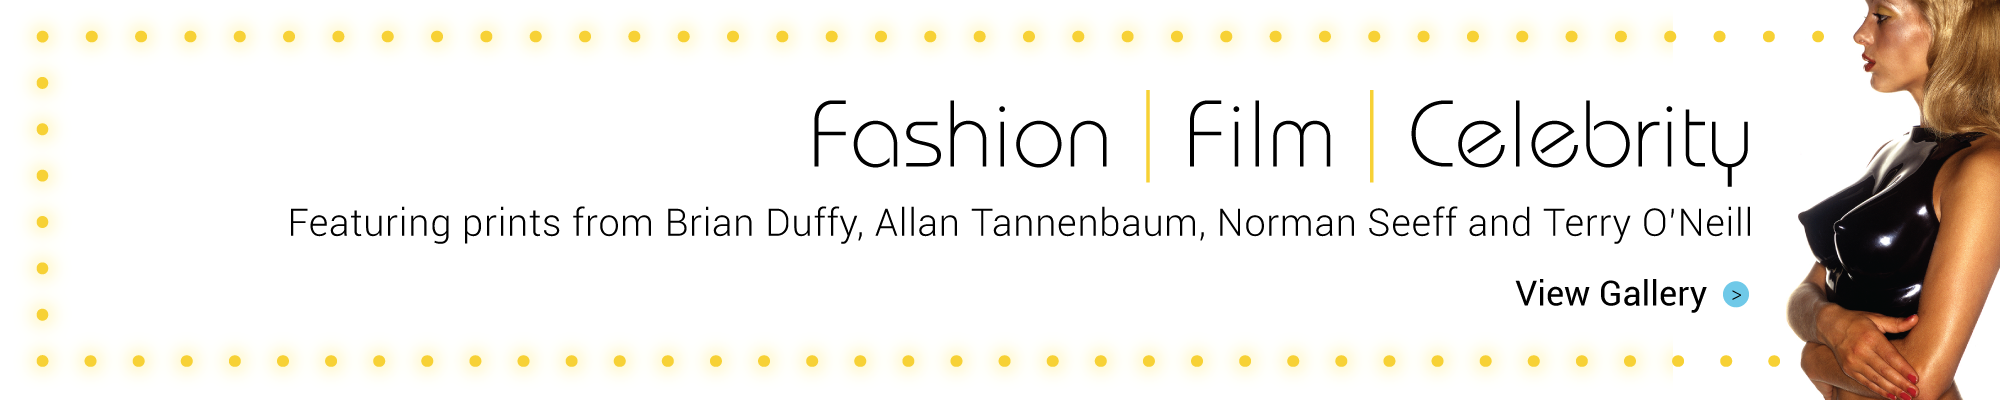 Film Fashion and Celebrity Banner